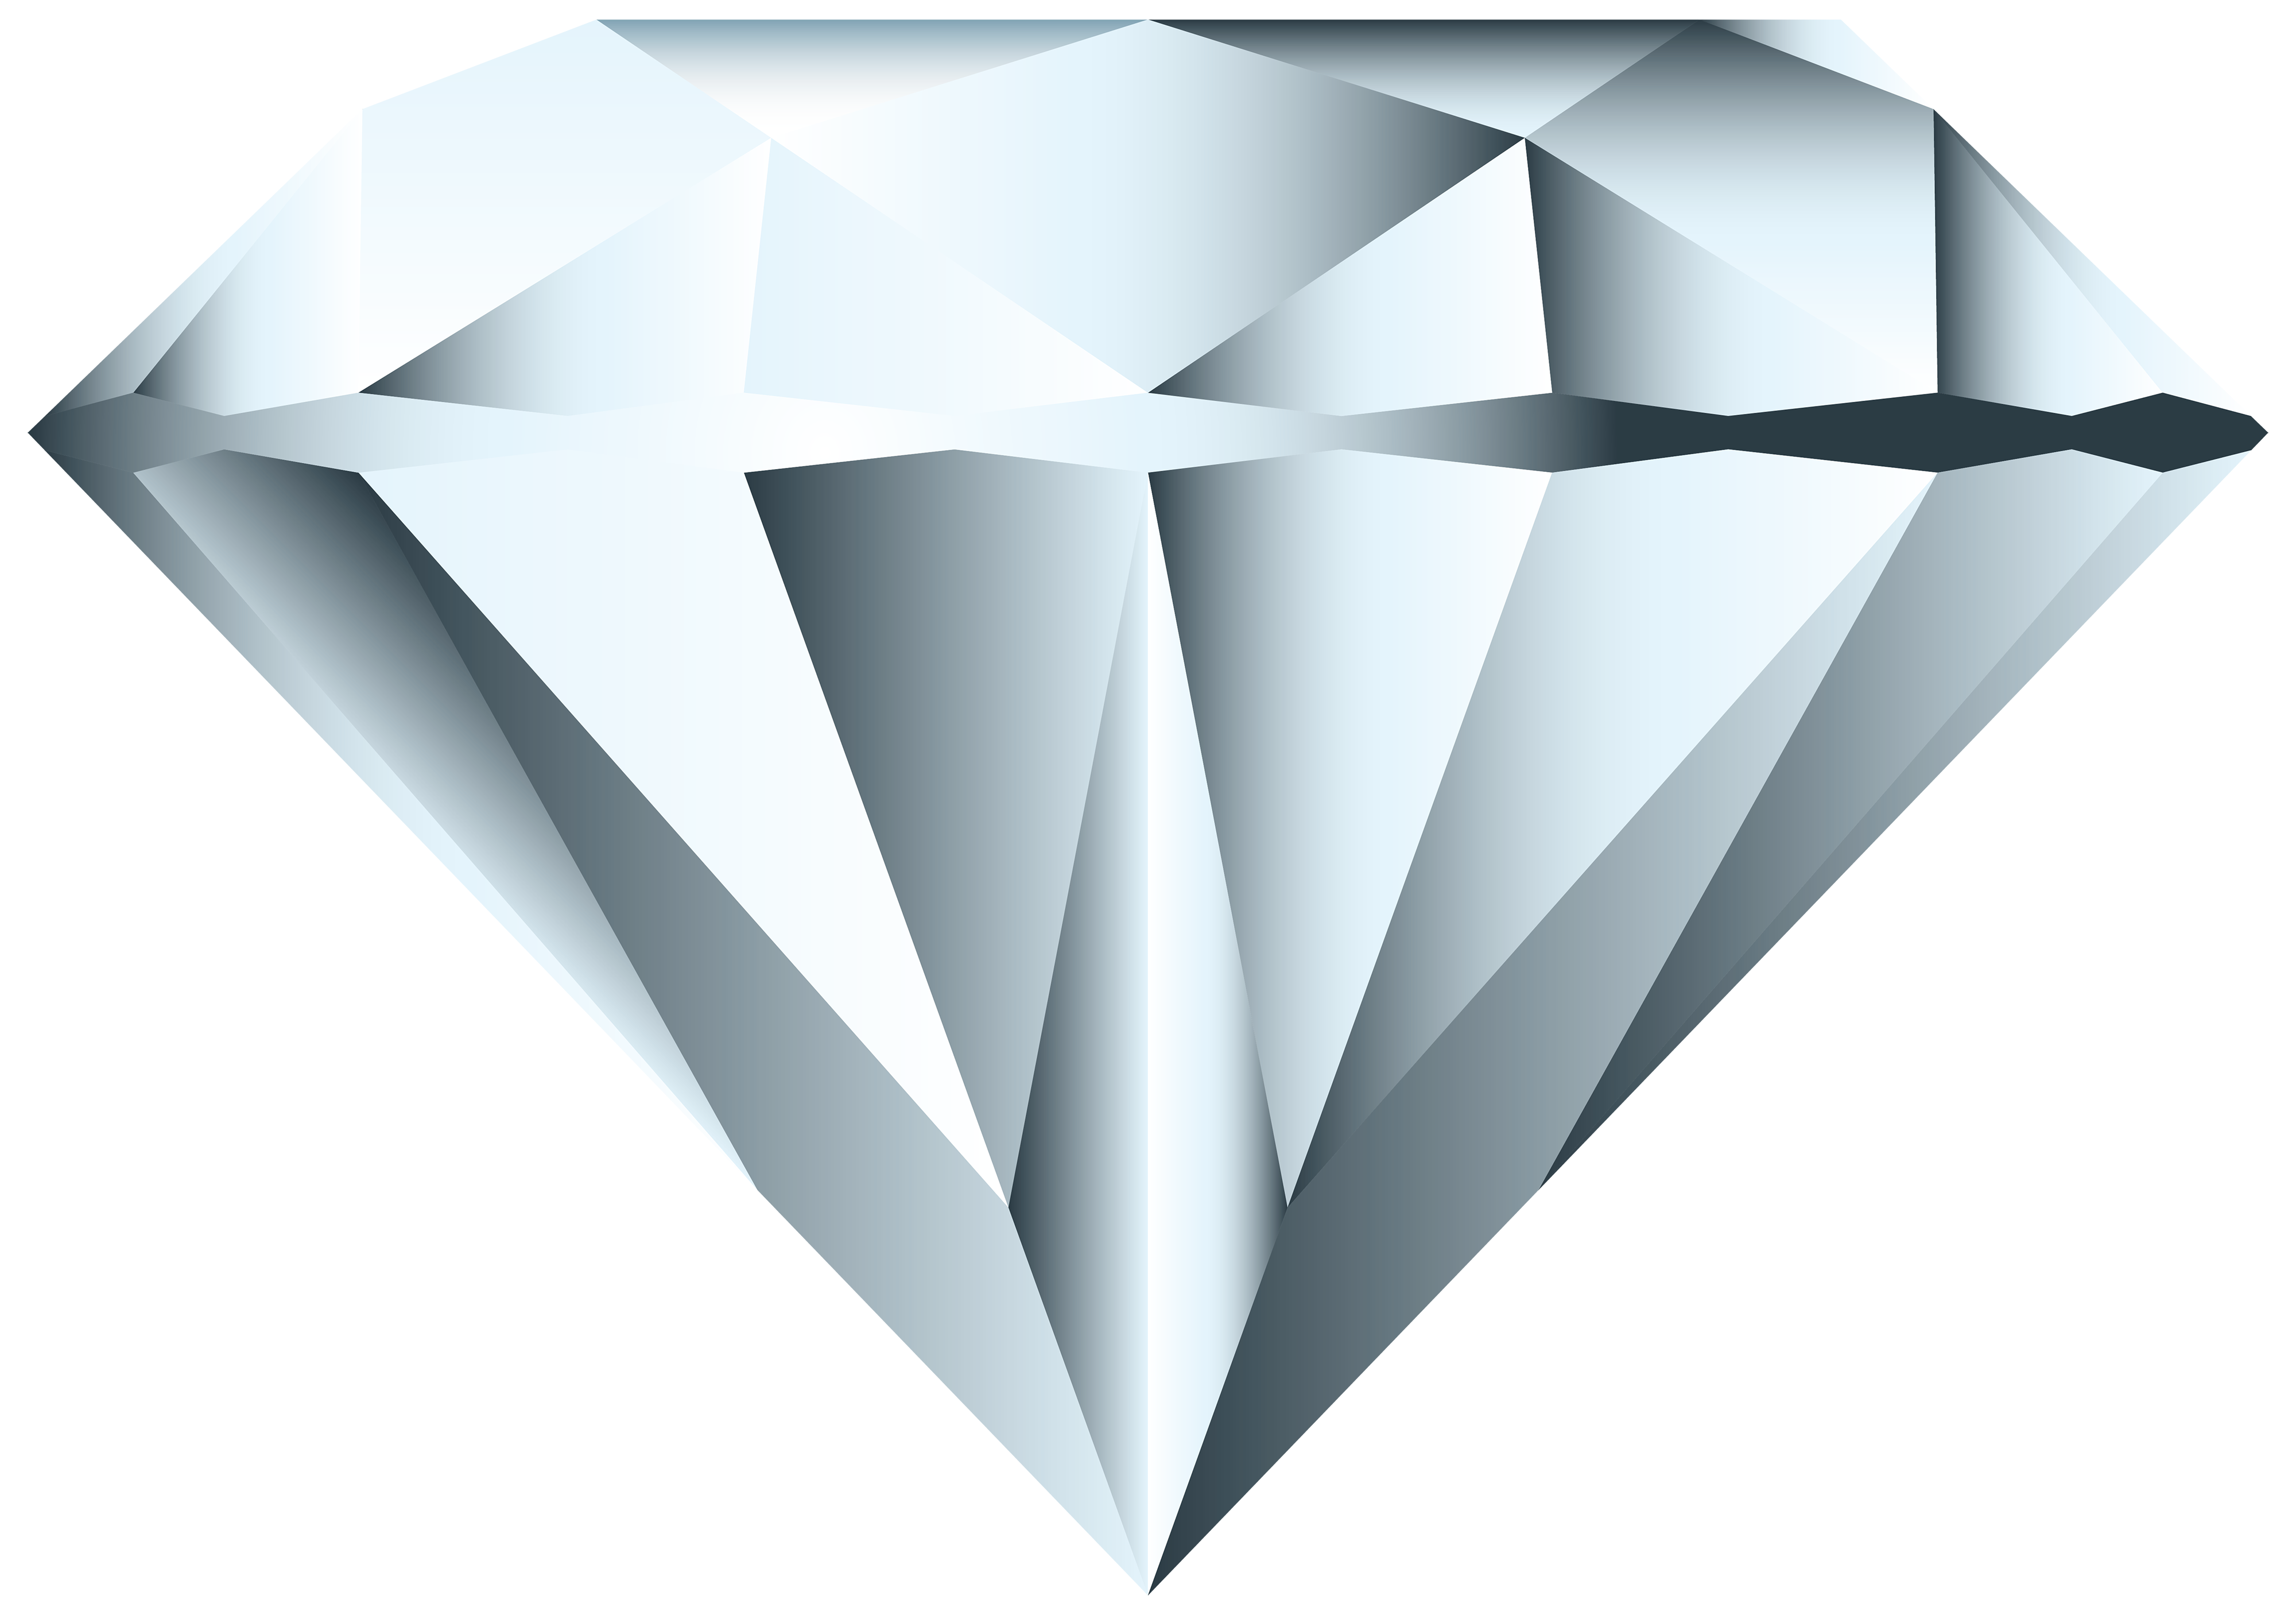 Diamond clipart 2